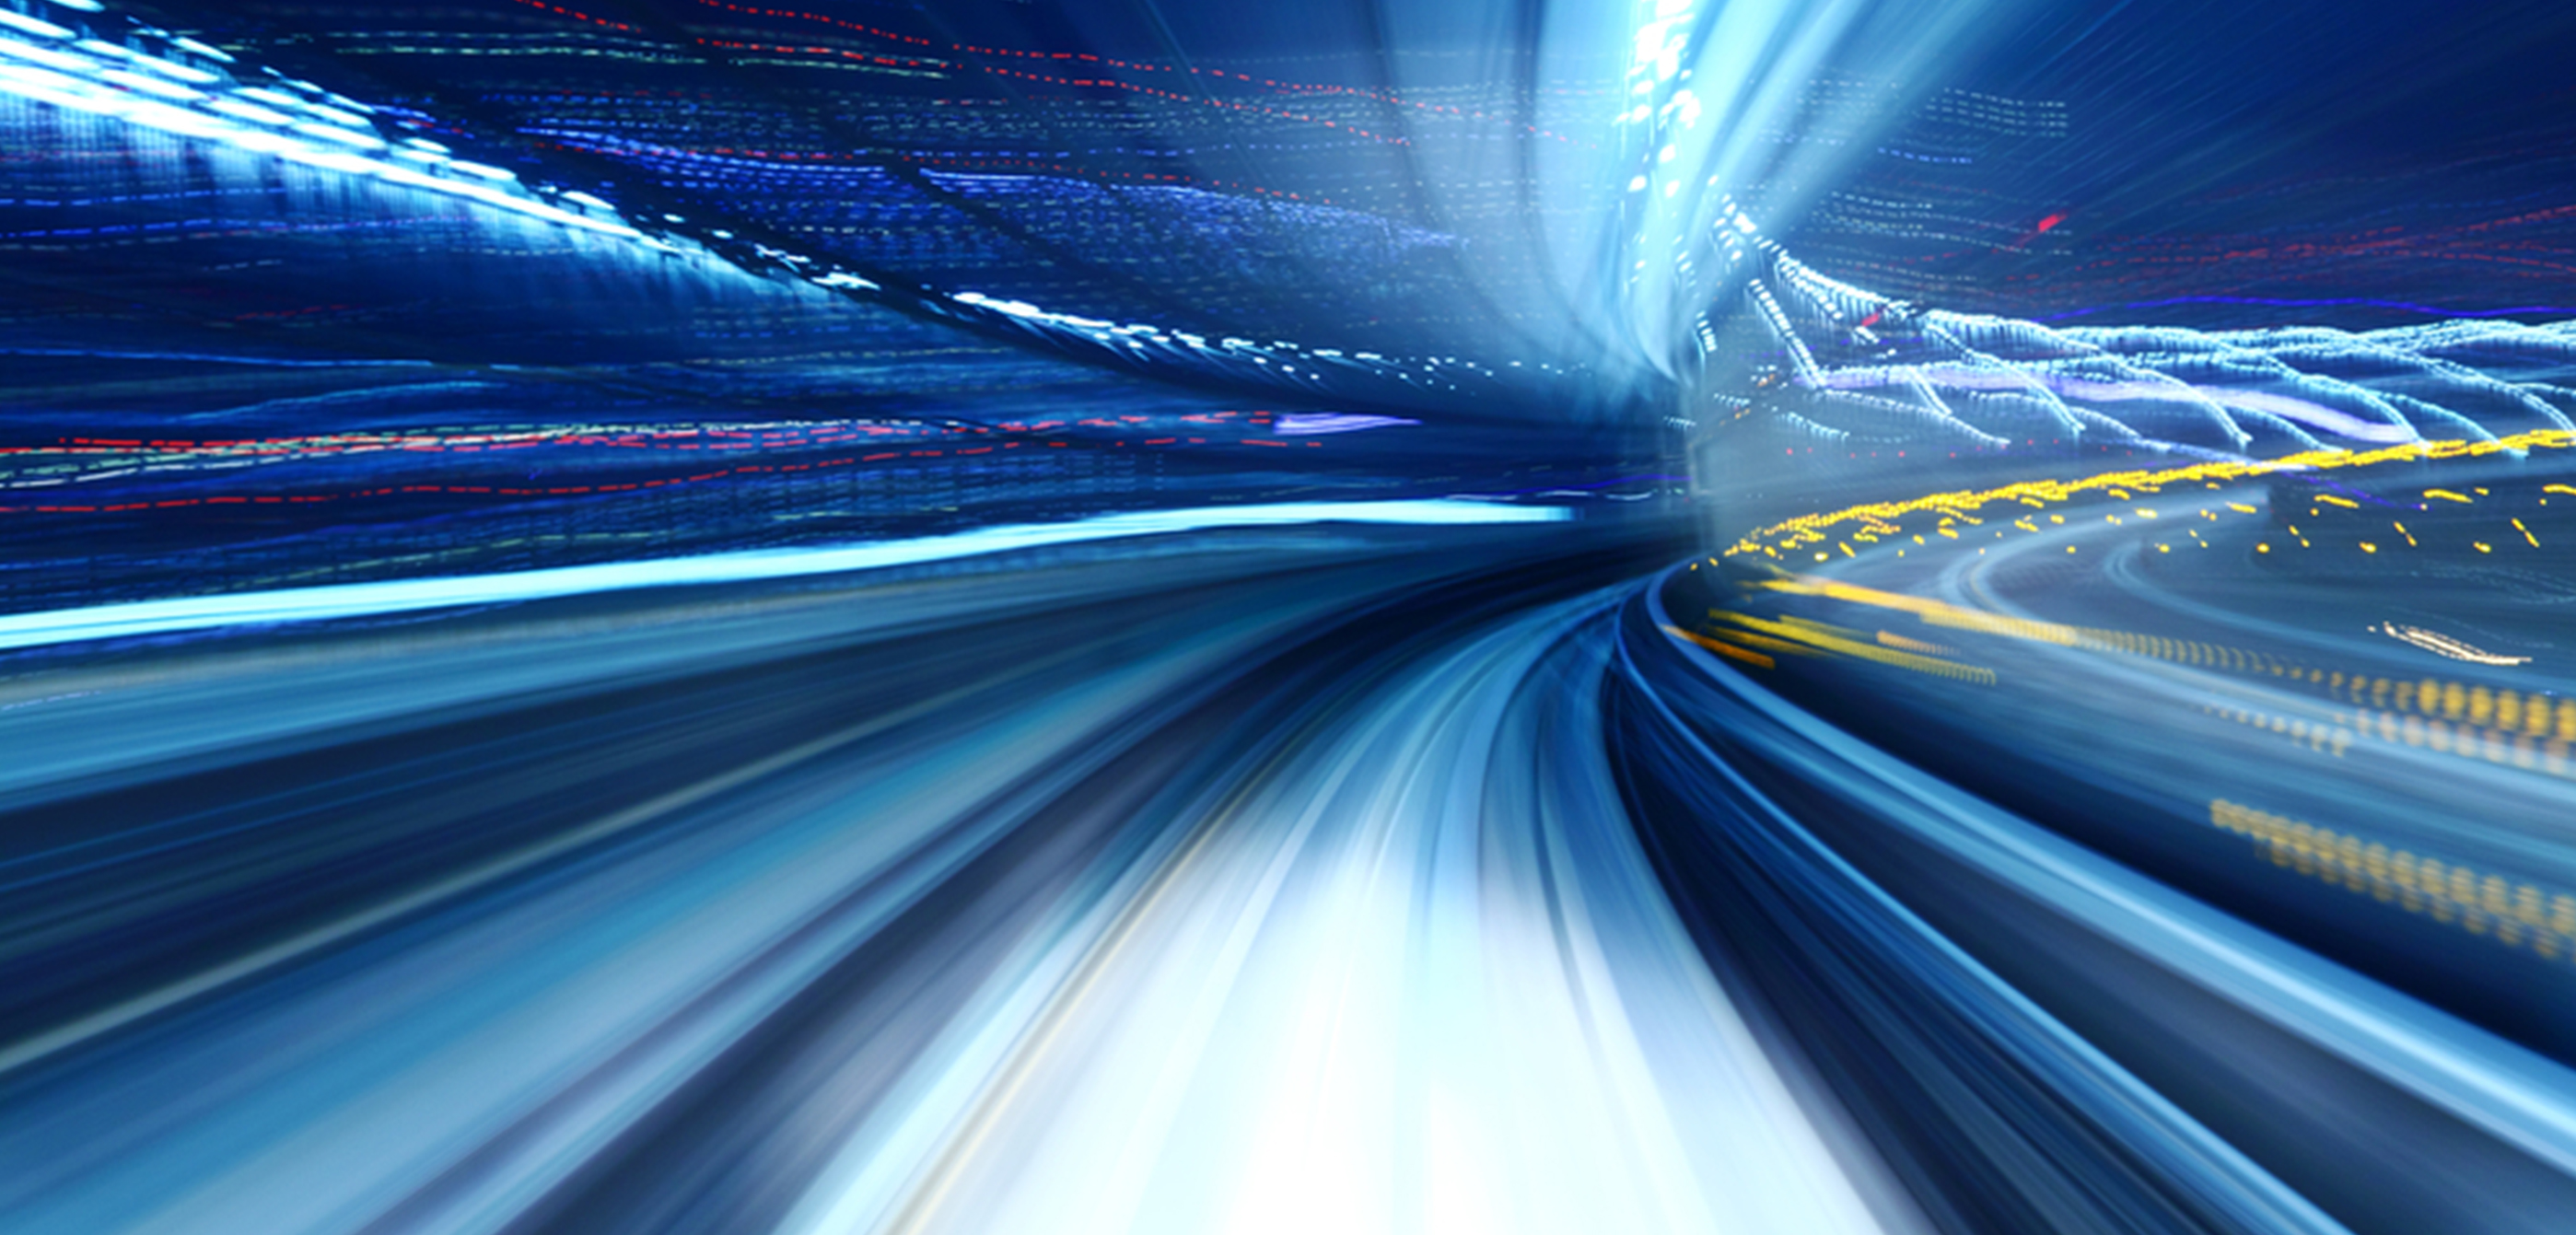 Scientific Breakthrough Could Dramatically Impact Fiber Optic Technology (blog image)